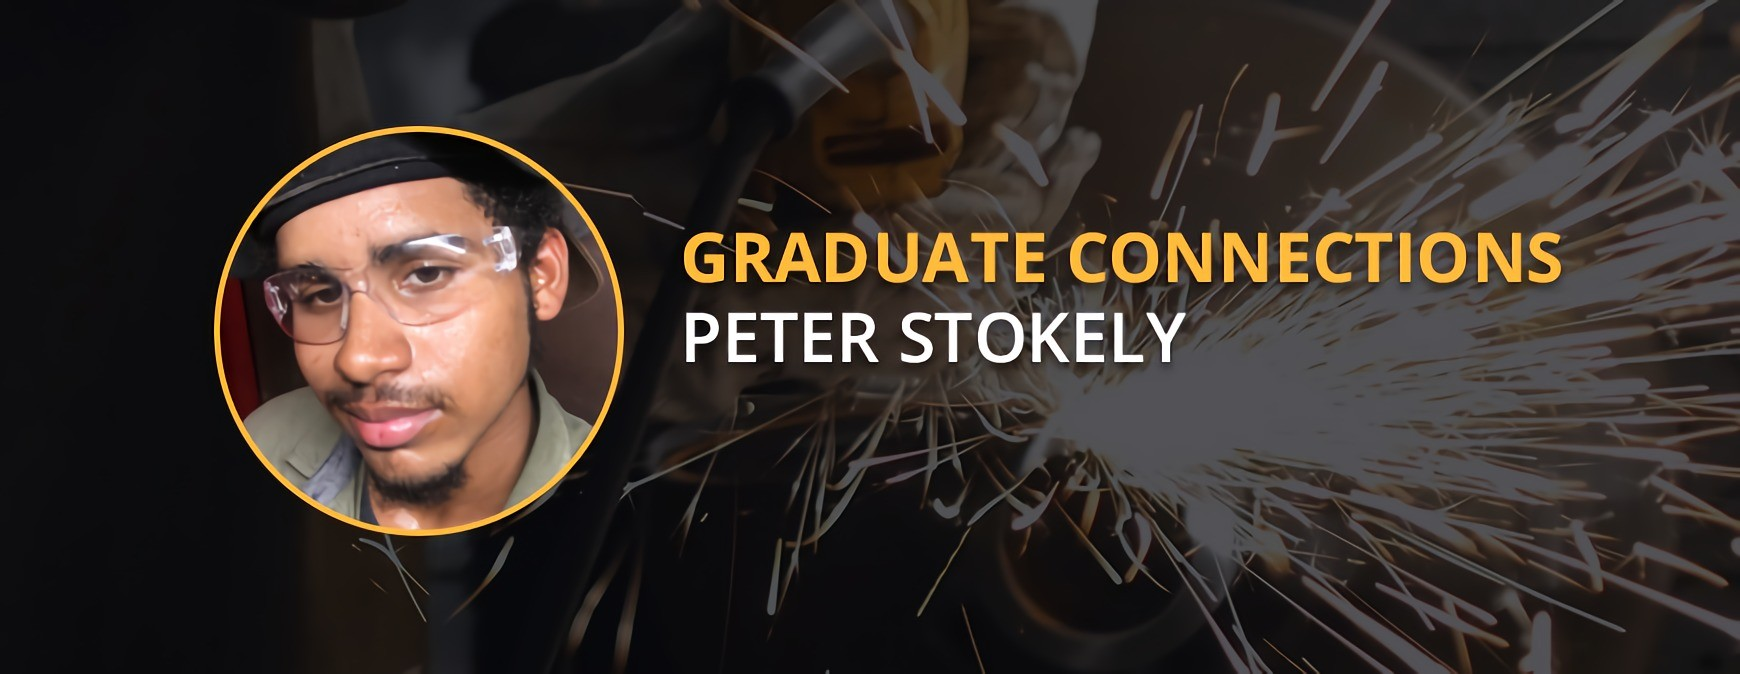 Peter Stokely